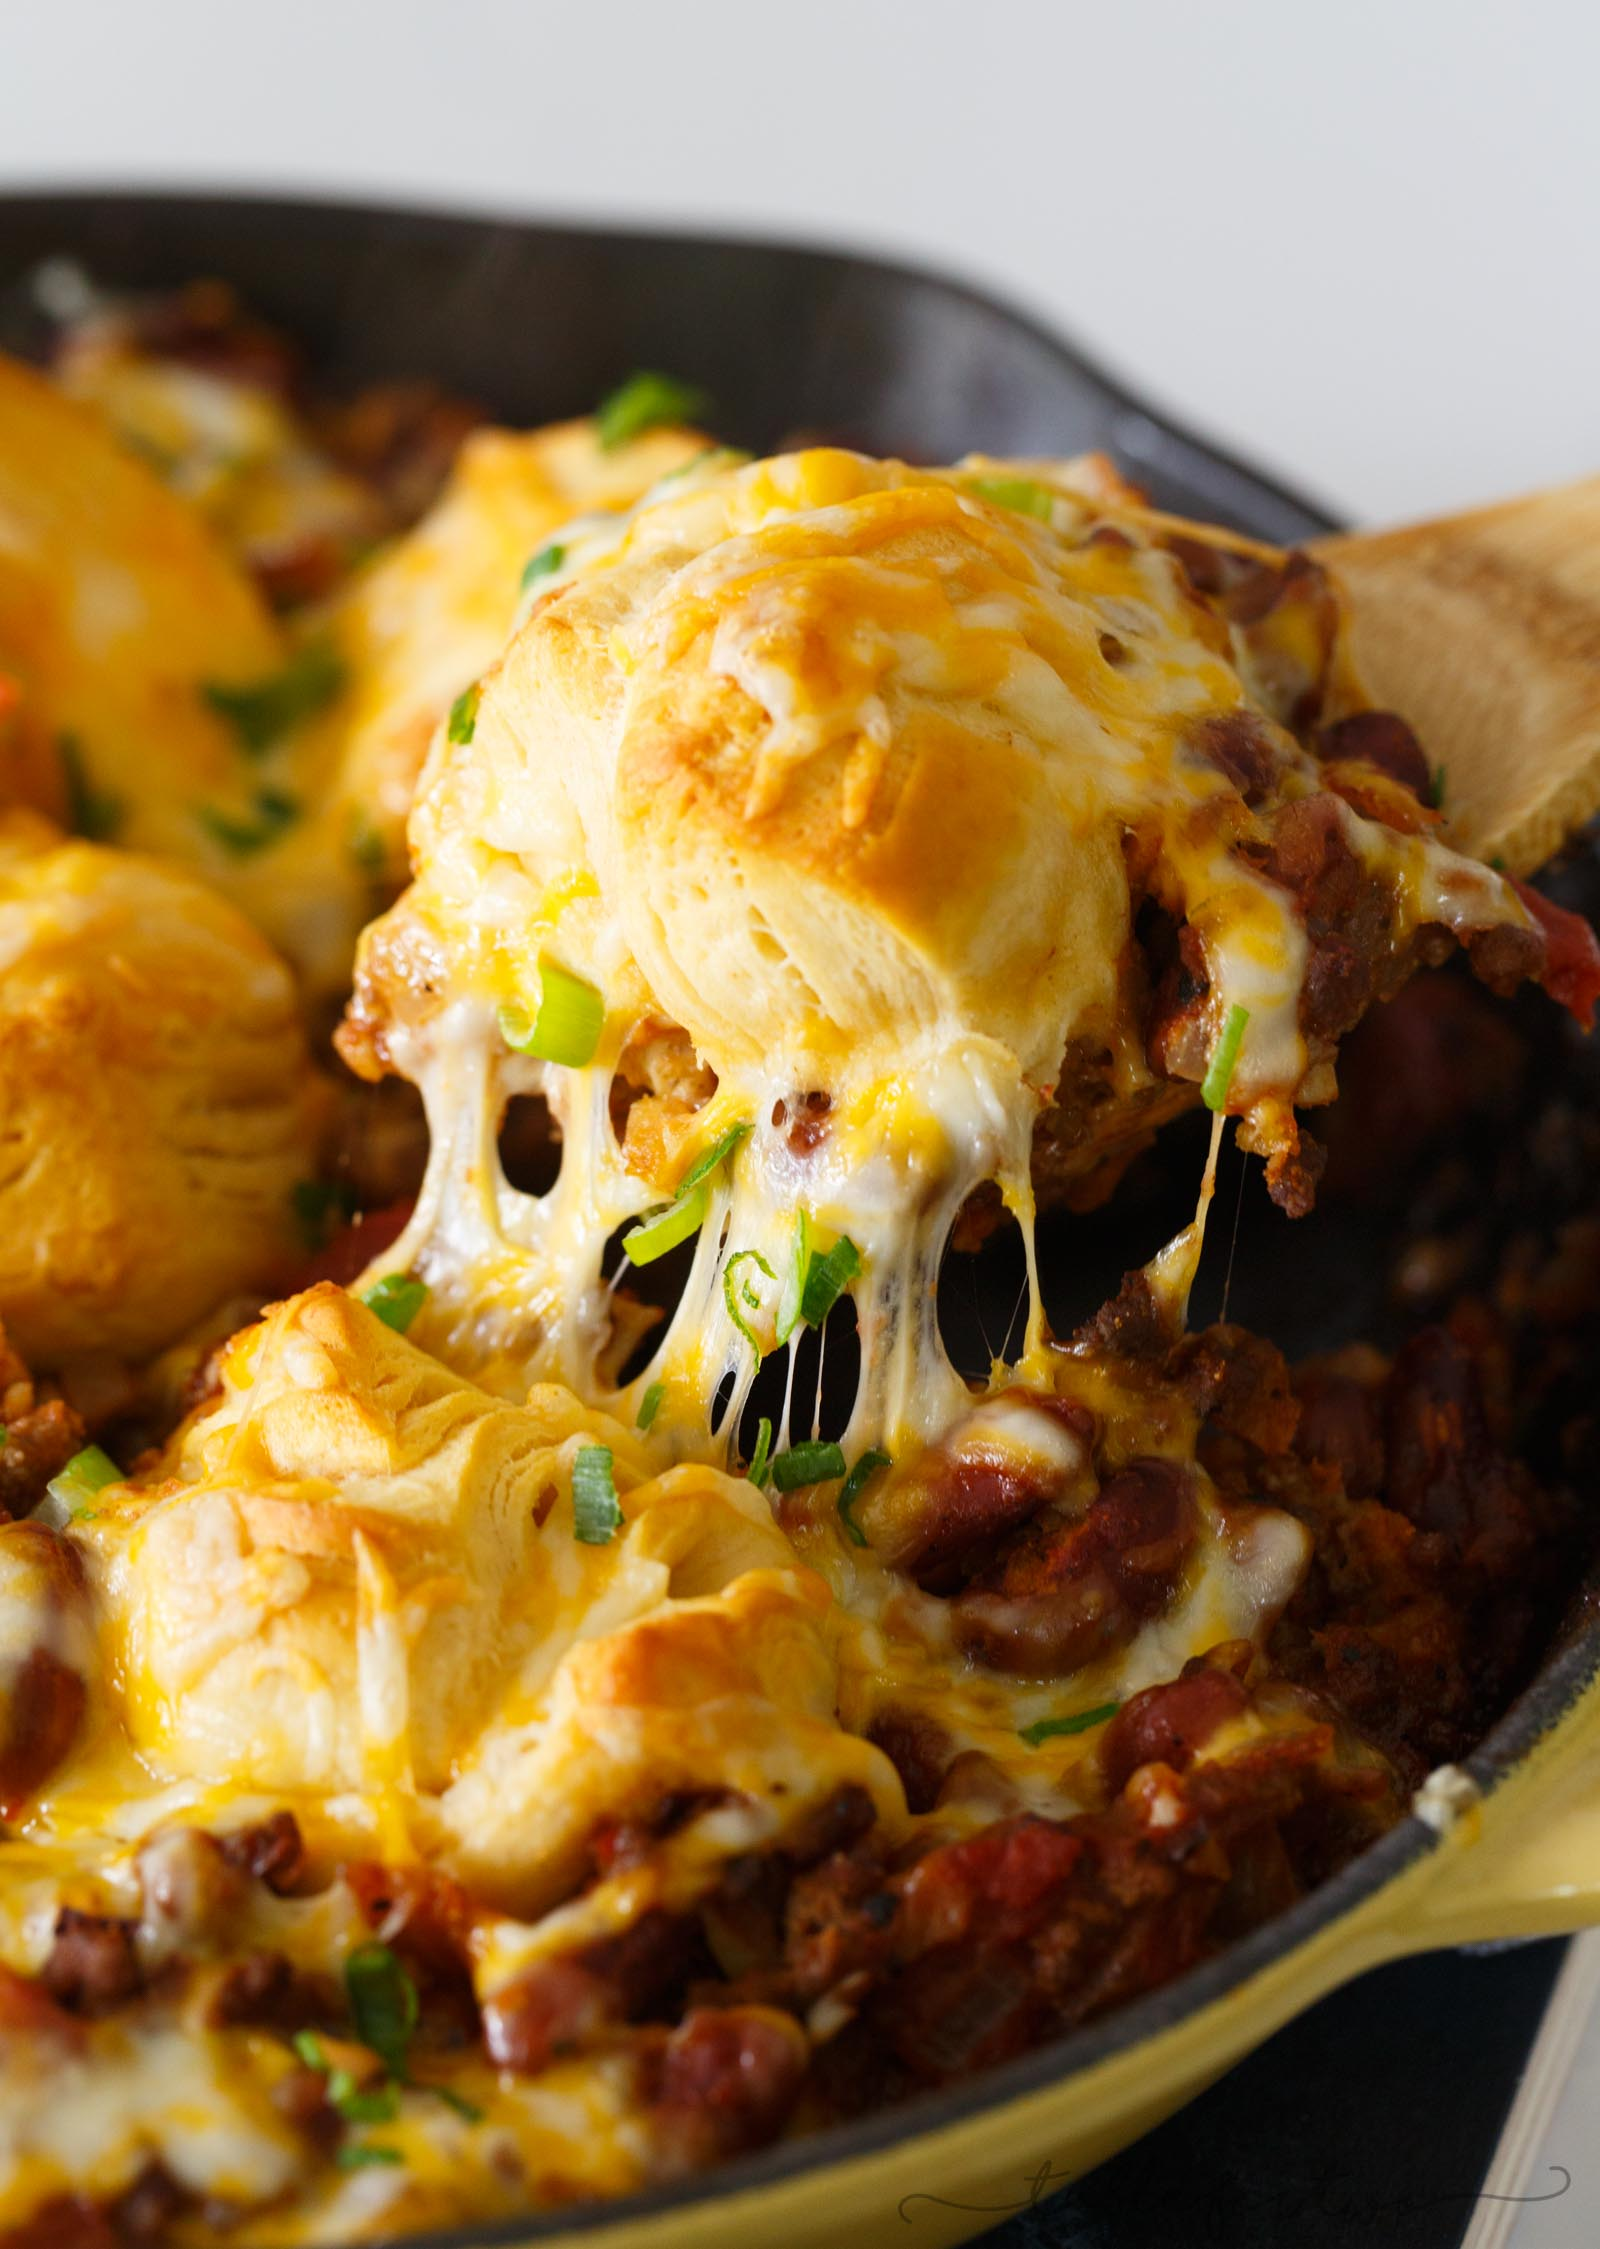 Frito Pie Chili Biscuit Skillet Skillet Chili With